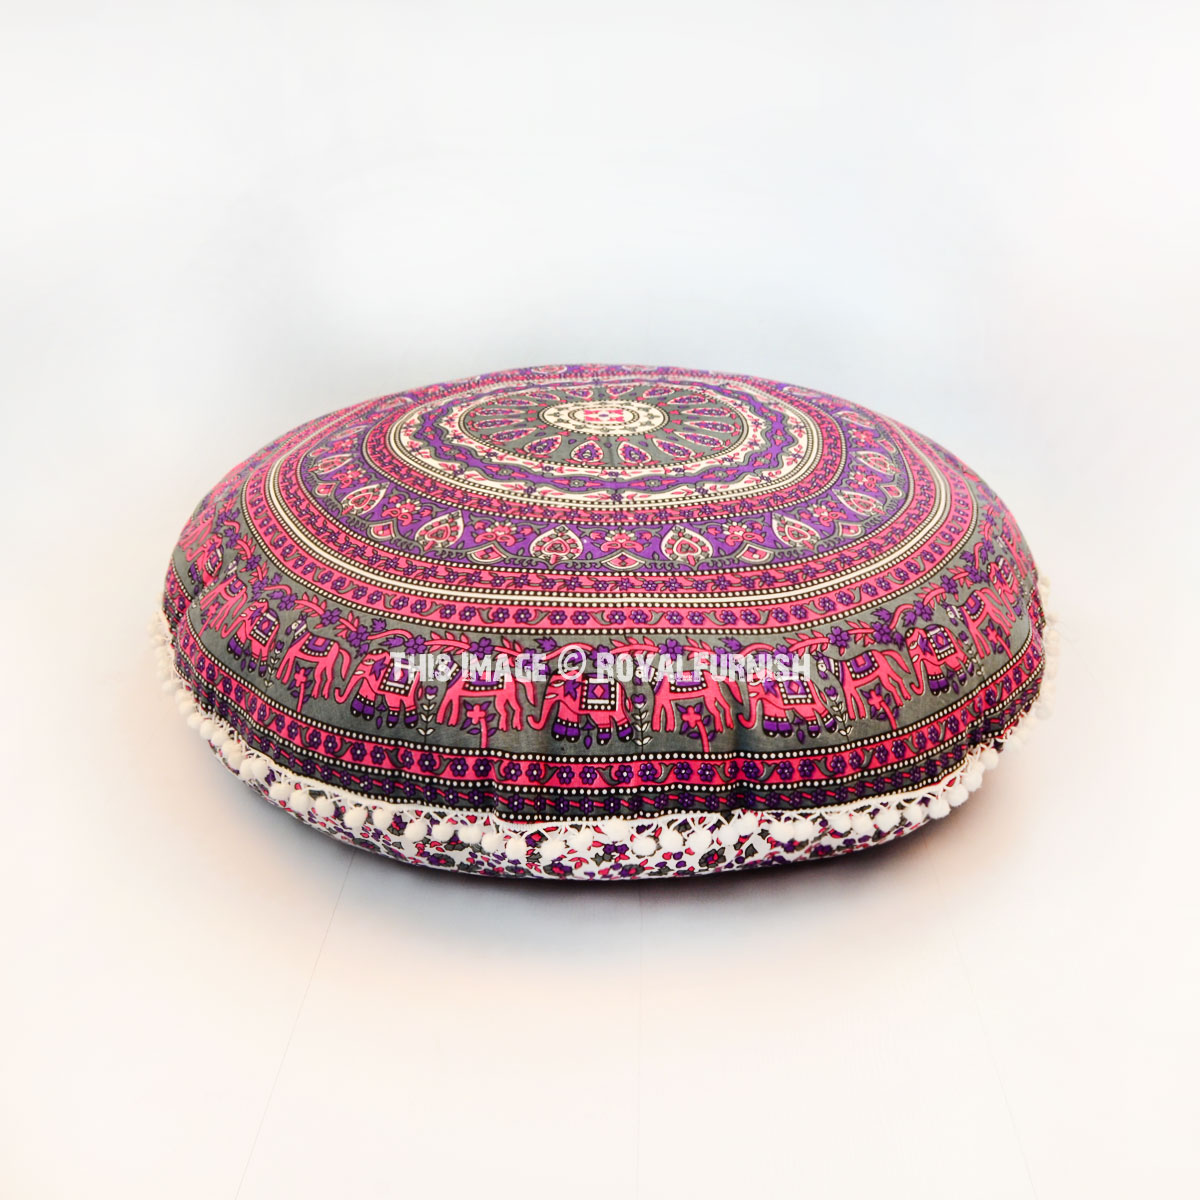 Pink & Grey Elephants Ring Medallion Round Floor Pillow Cover - RoyalFurnish.com